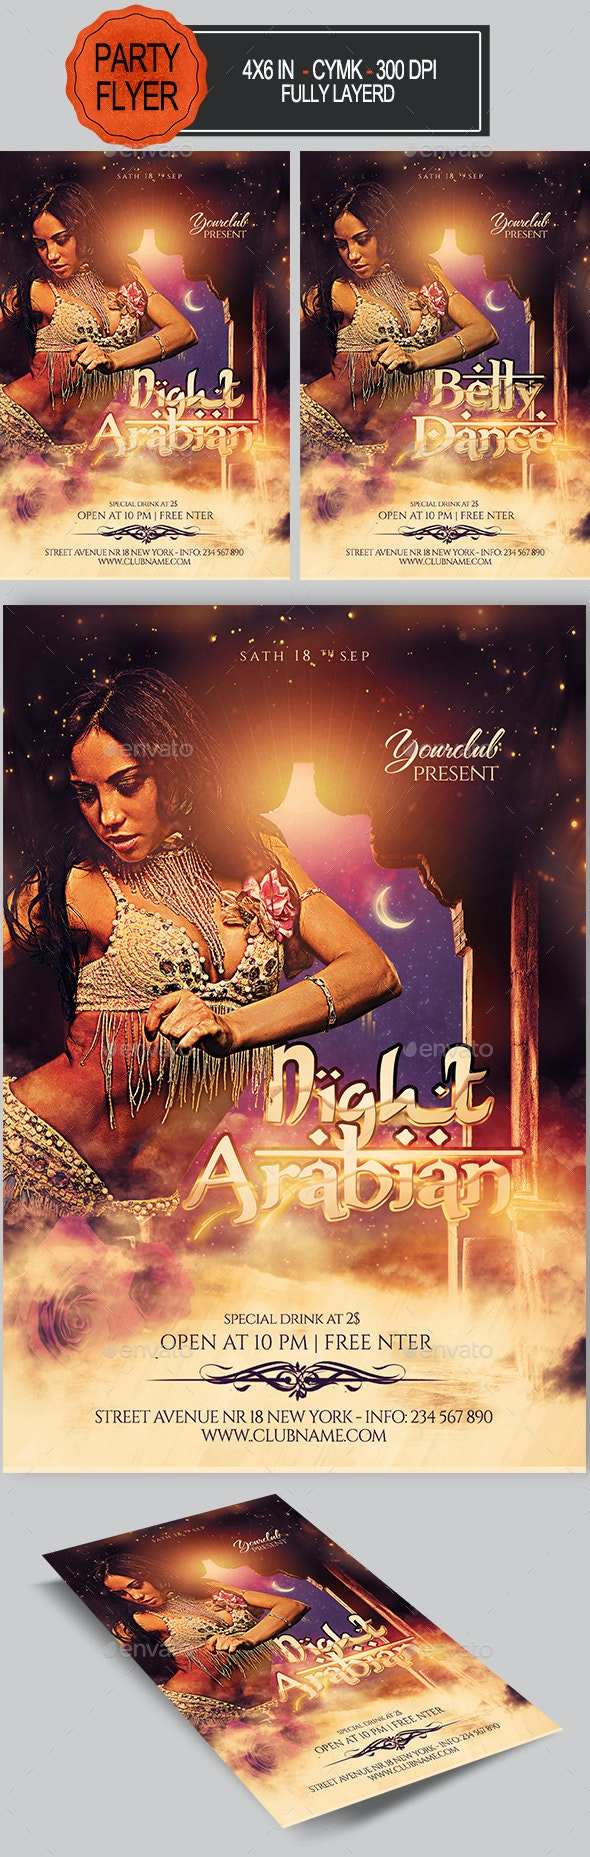 Arabian /Belly Dance Party Flyer - Clubs & Parties Events